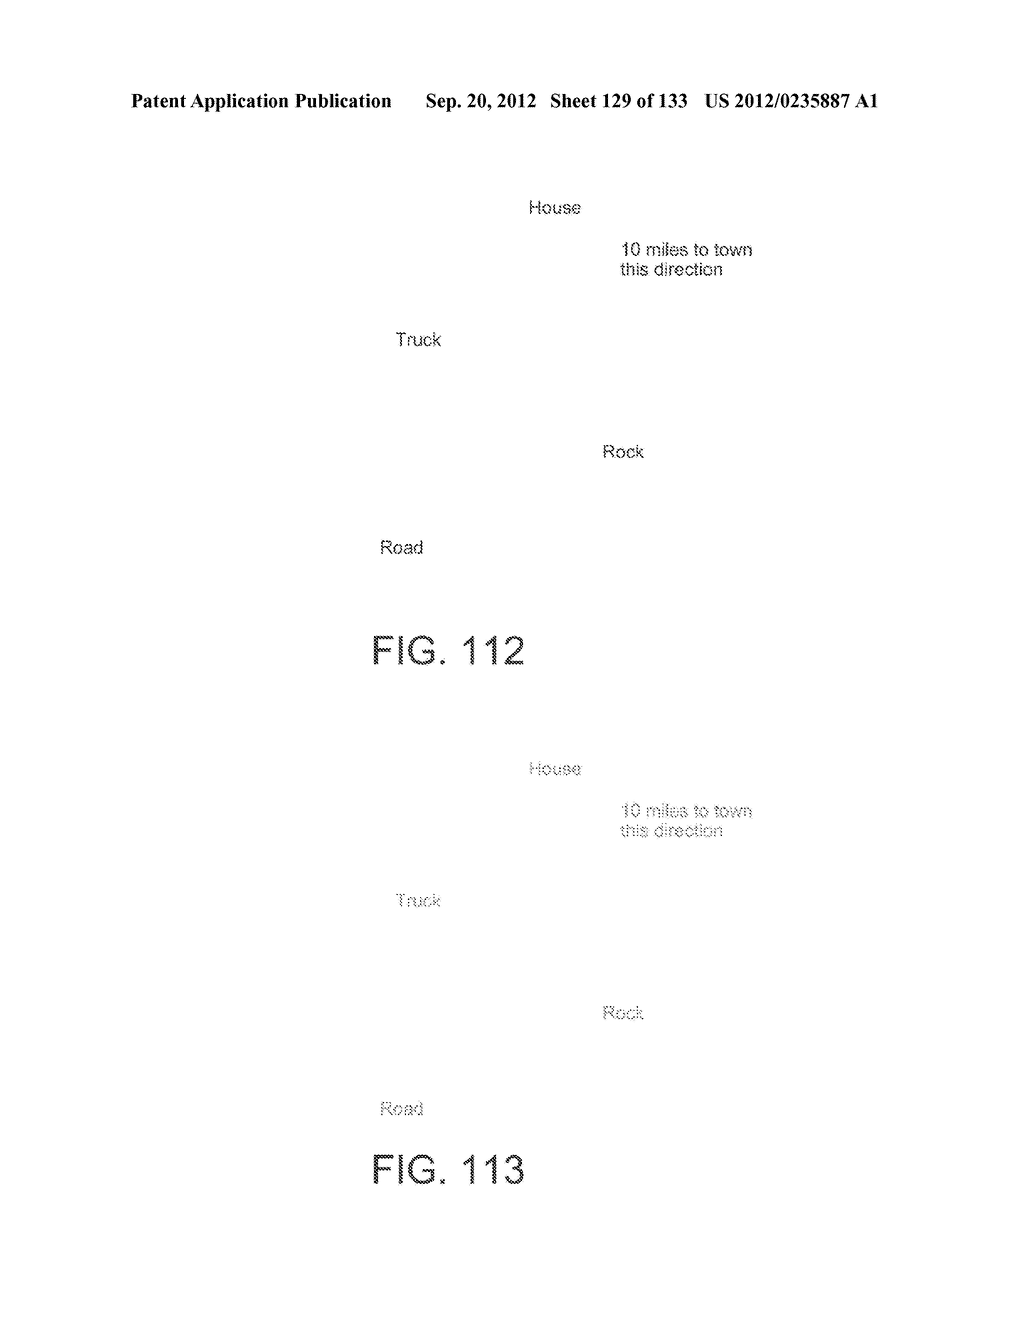 SEE-THROUGH NEAR-EYE DISPLAY GLASSES INCLUDING A PARTIALLY REFLECTIVE,     PARTIALLY TRANSMITTING OPTICAL ELEMENT AND AN OPTICALLY FLAT FILM - diagram, schematic, and image 130